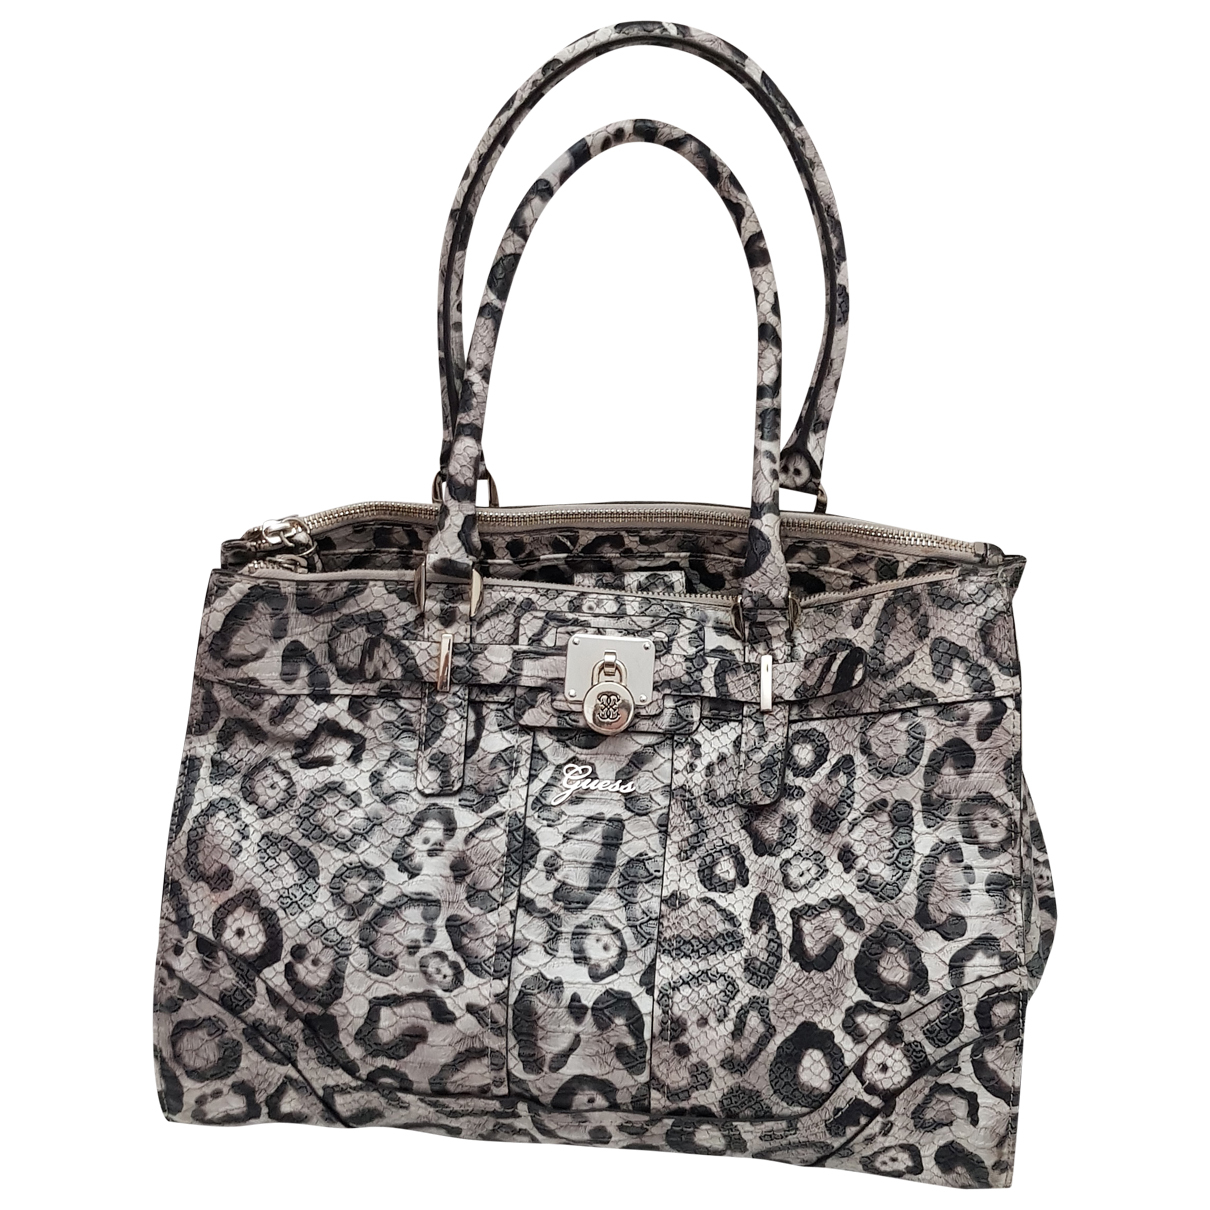 Guess \N Multicolour Leather handbag for Women \N